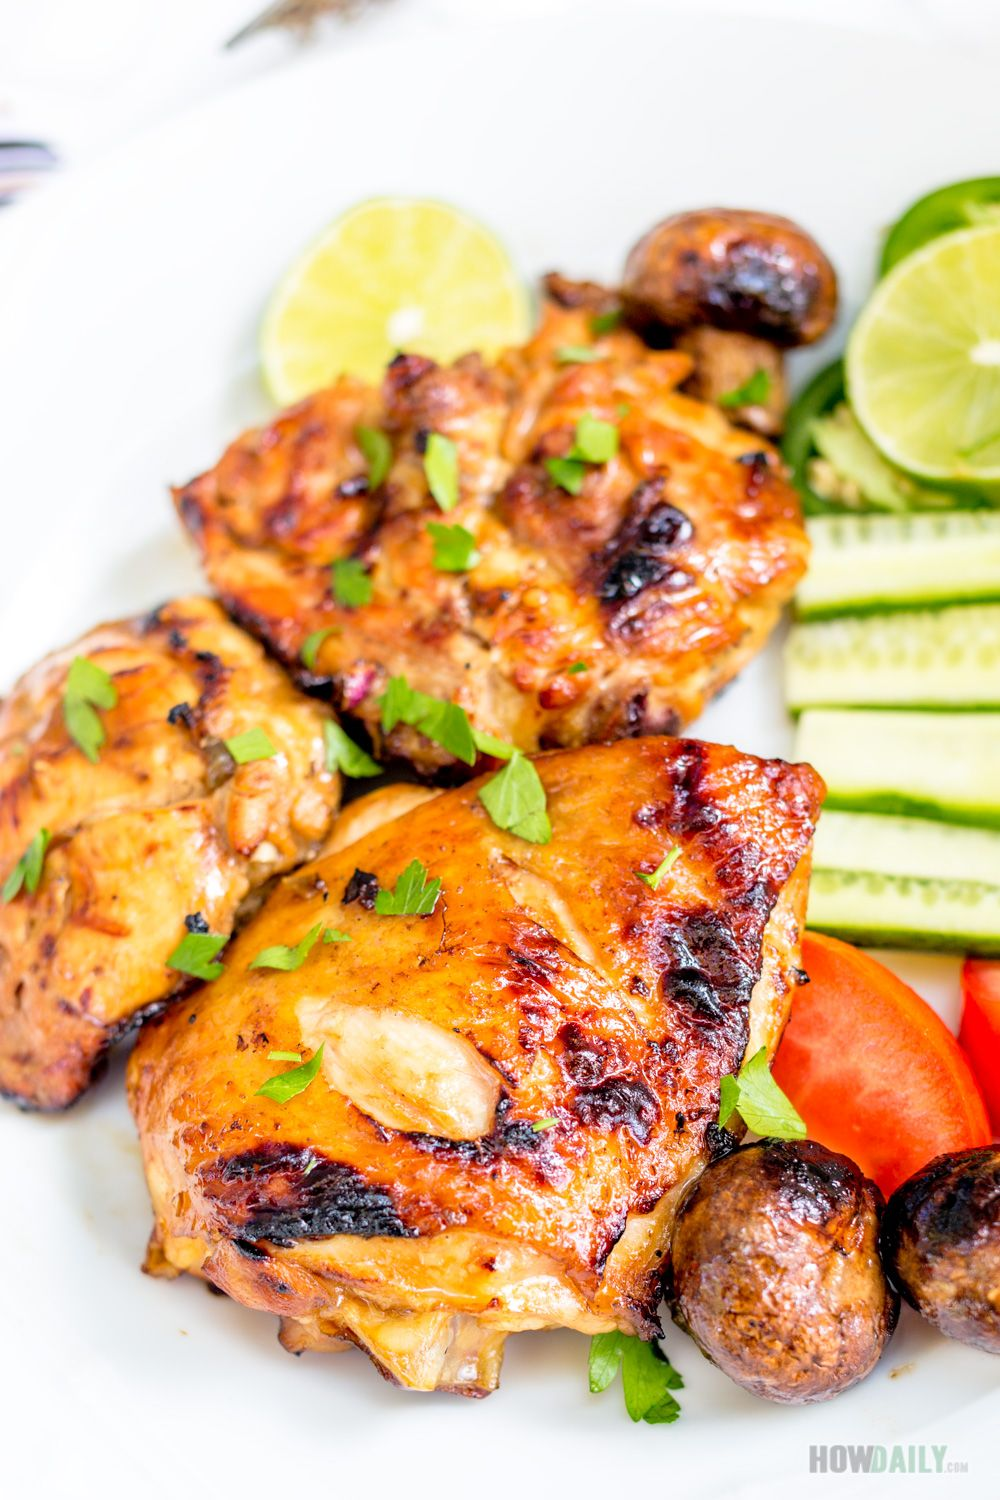 Baked Chicken Recipes Easy 4 Ingredients Ovens Soy Sauce